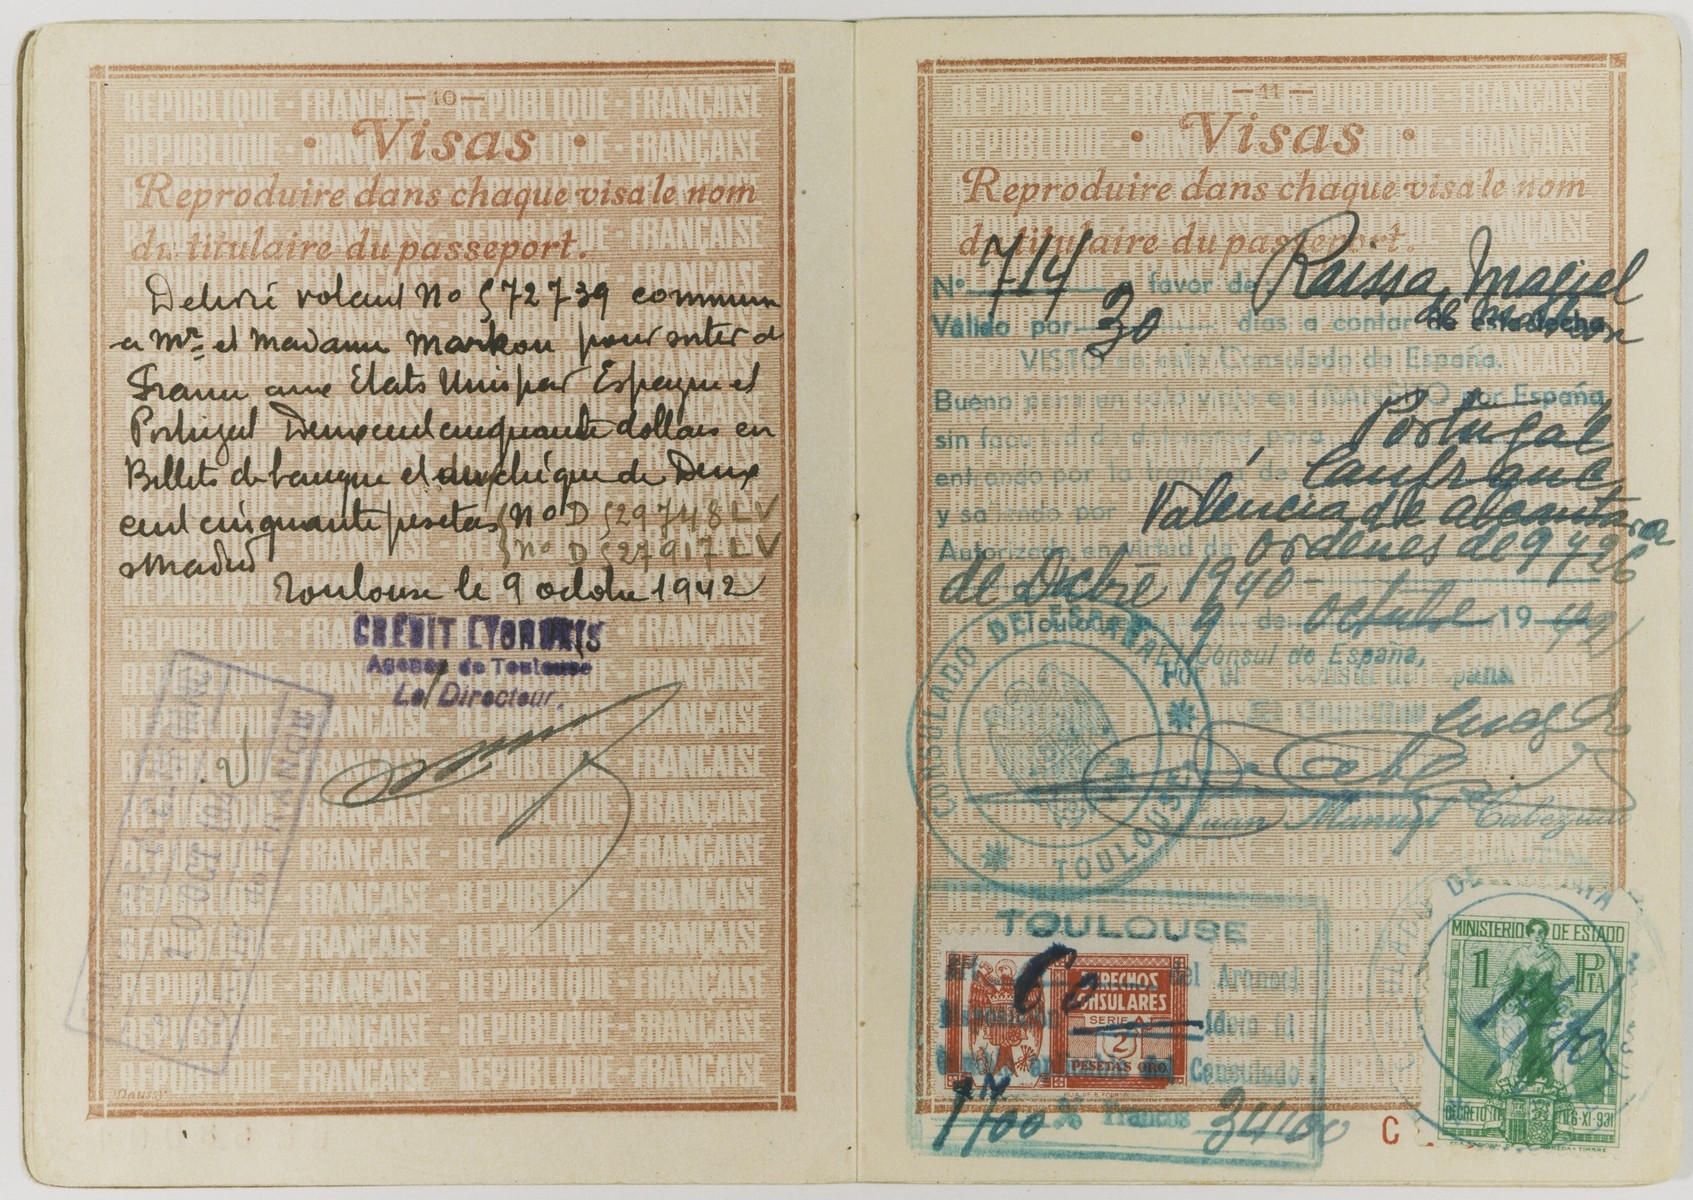 A page of a passport with stamped French, Portuguese and Spanish visas issued to Raya Markon, a Jewish emigre from Vilna, and her son, Alain.